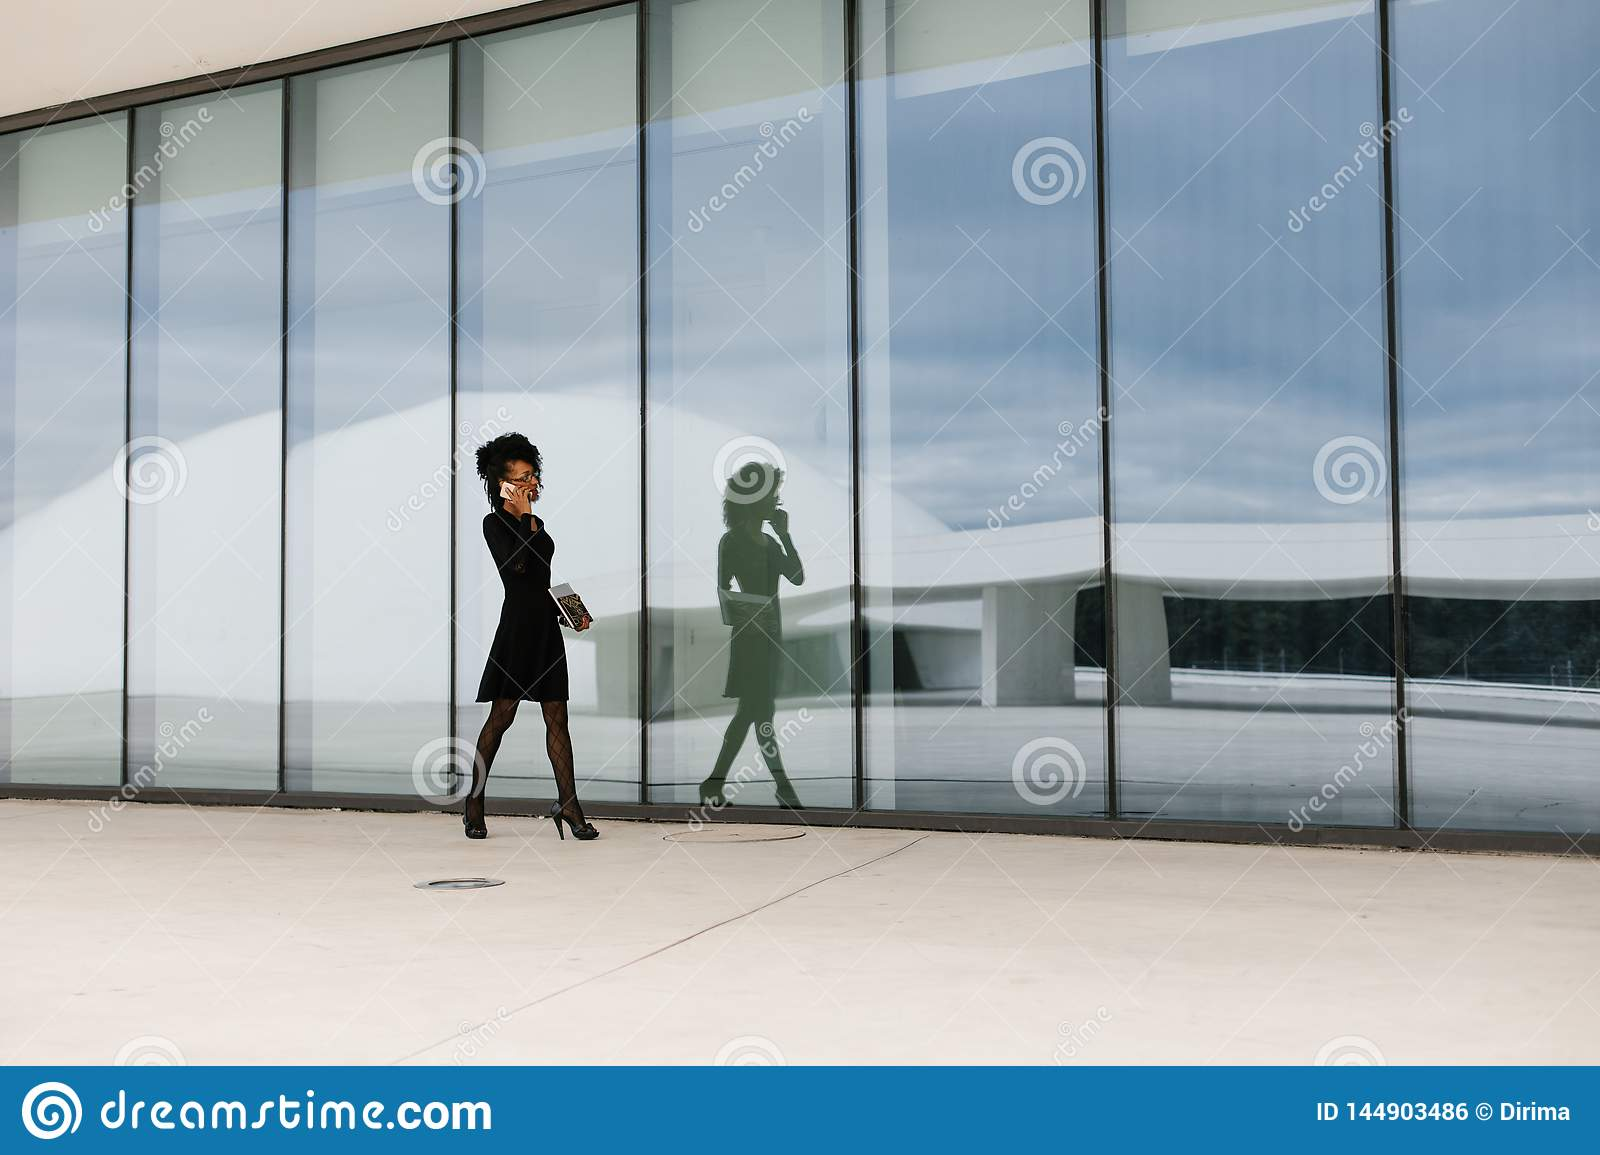 Professional woman walking and talking on cellphone outside.